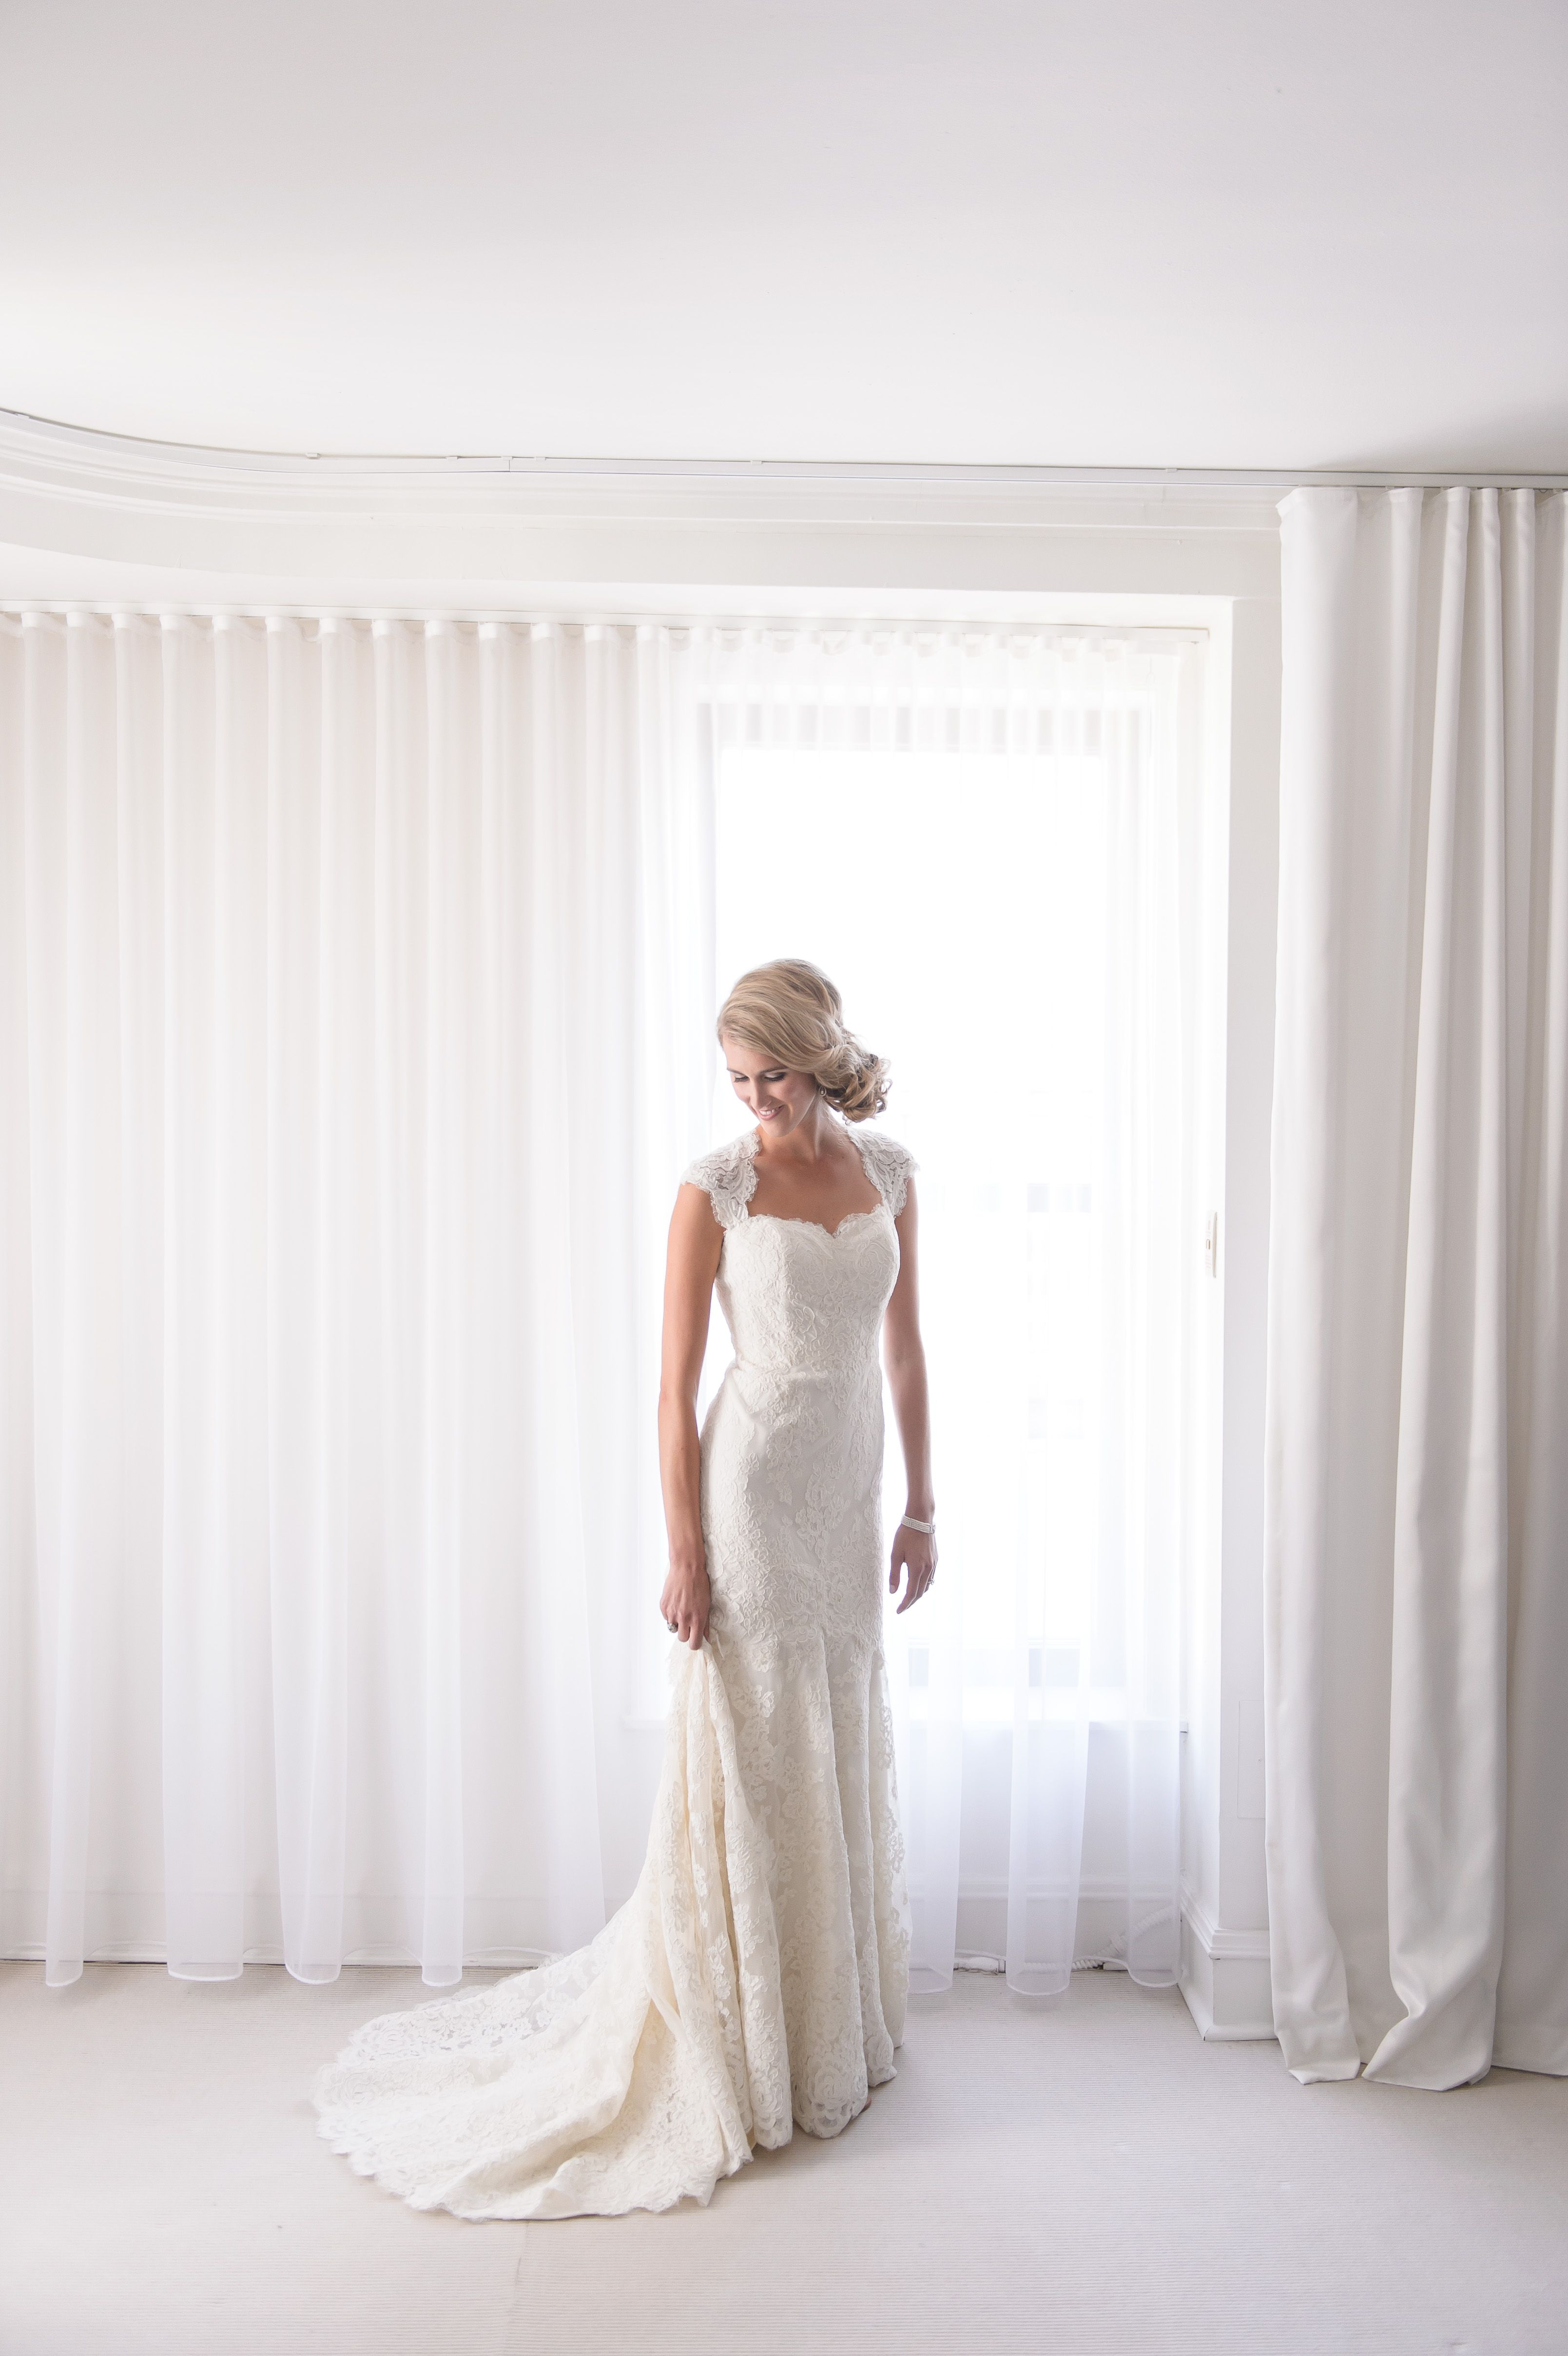 Anne Barge Wedding Dress With Cap Sleeves Real Wedding Featured On The Knot The Bride Was Married Anne Barge Wedding Dresses Wedding Dresses Elegant Wedding